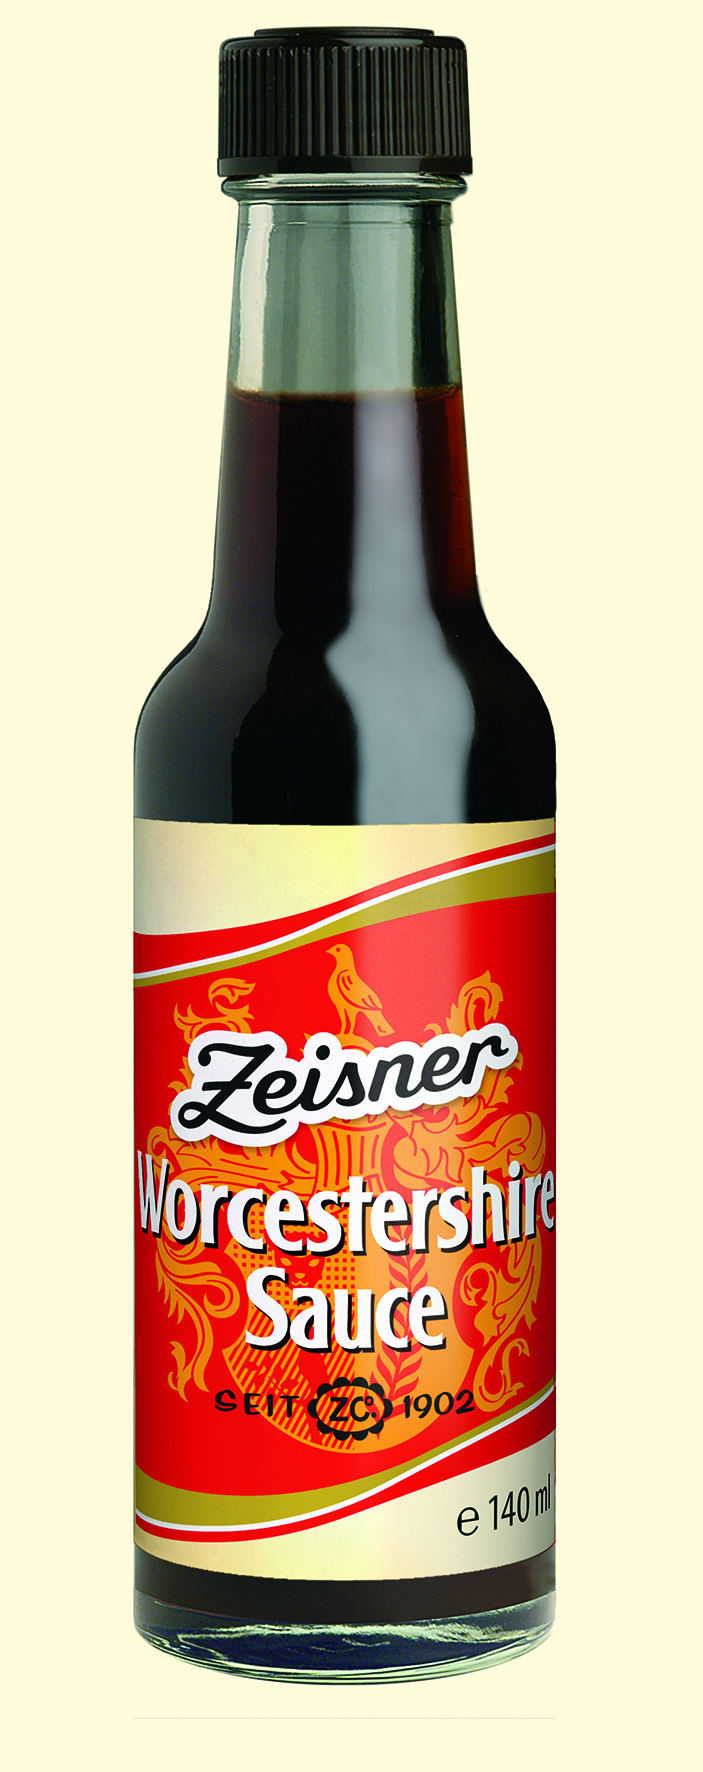 Zeisner Worcestershire Sauce 140ml Glasflasche